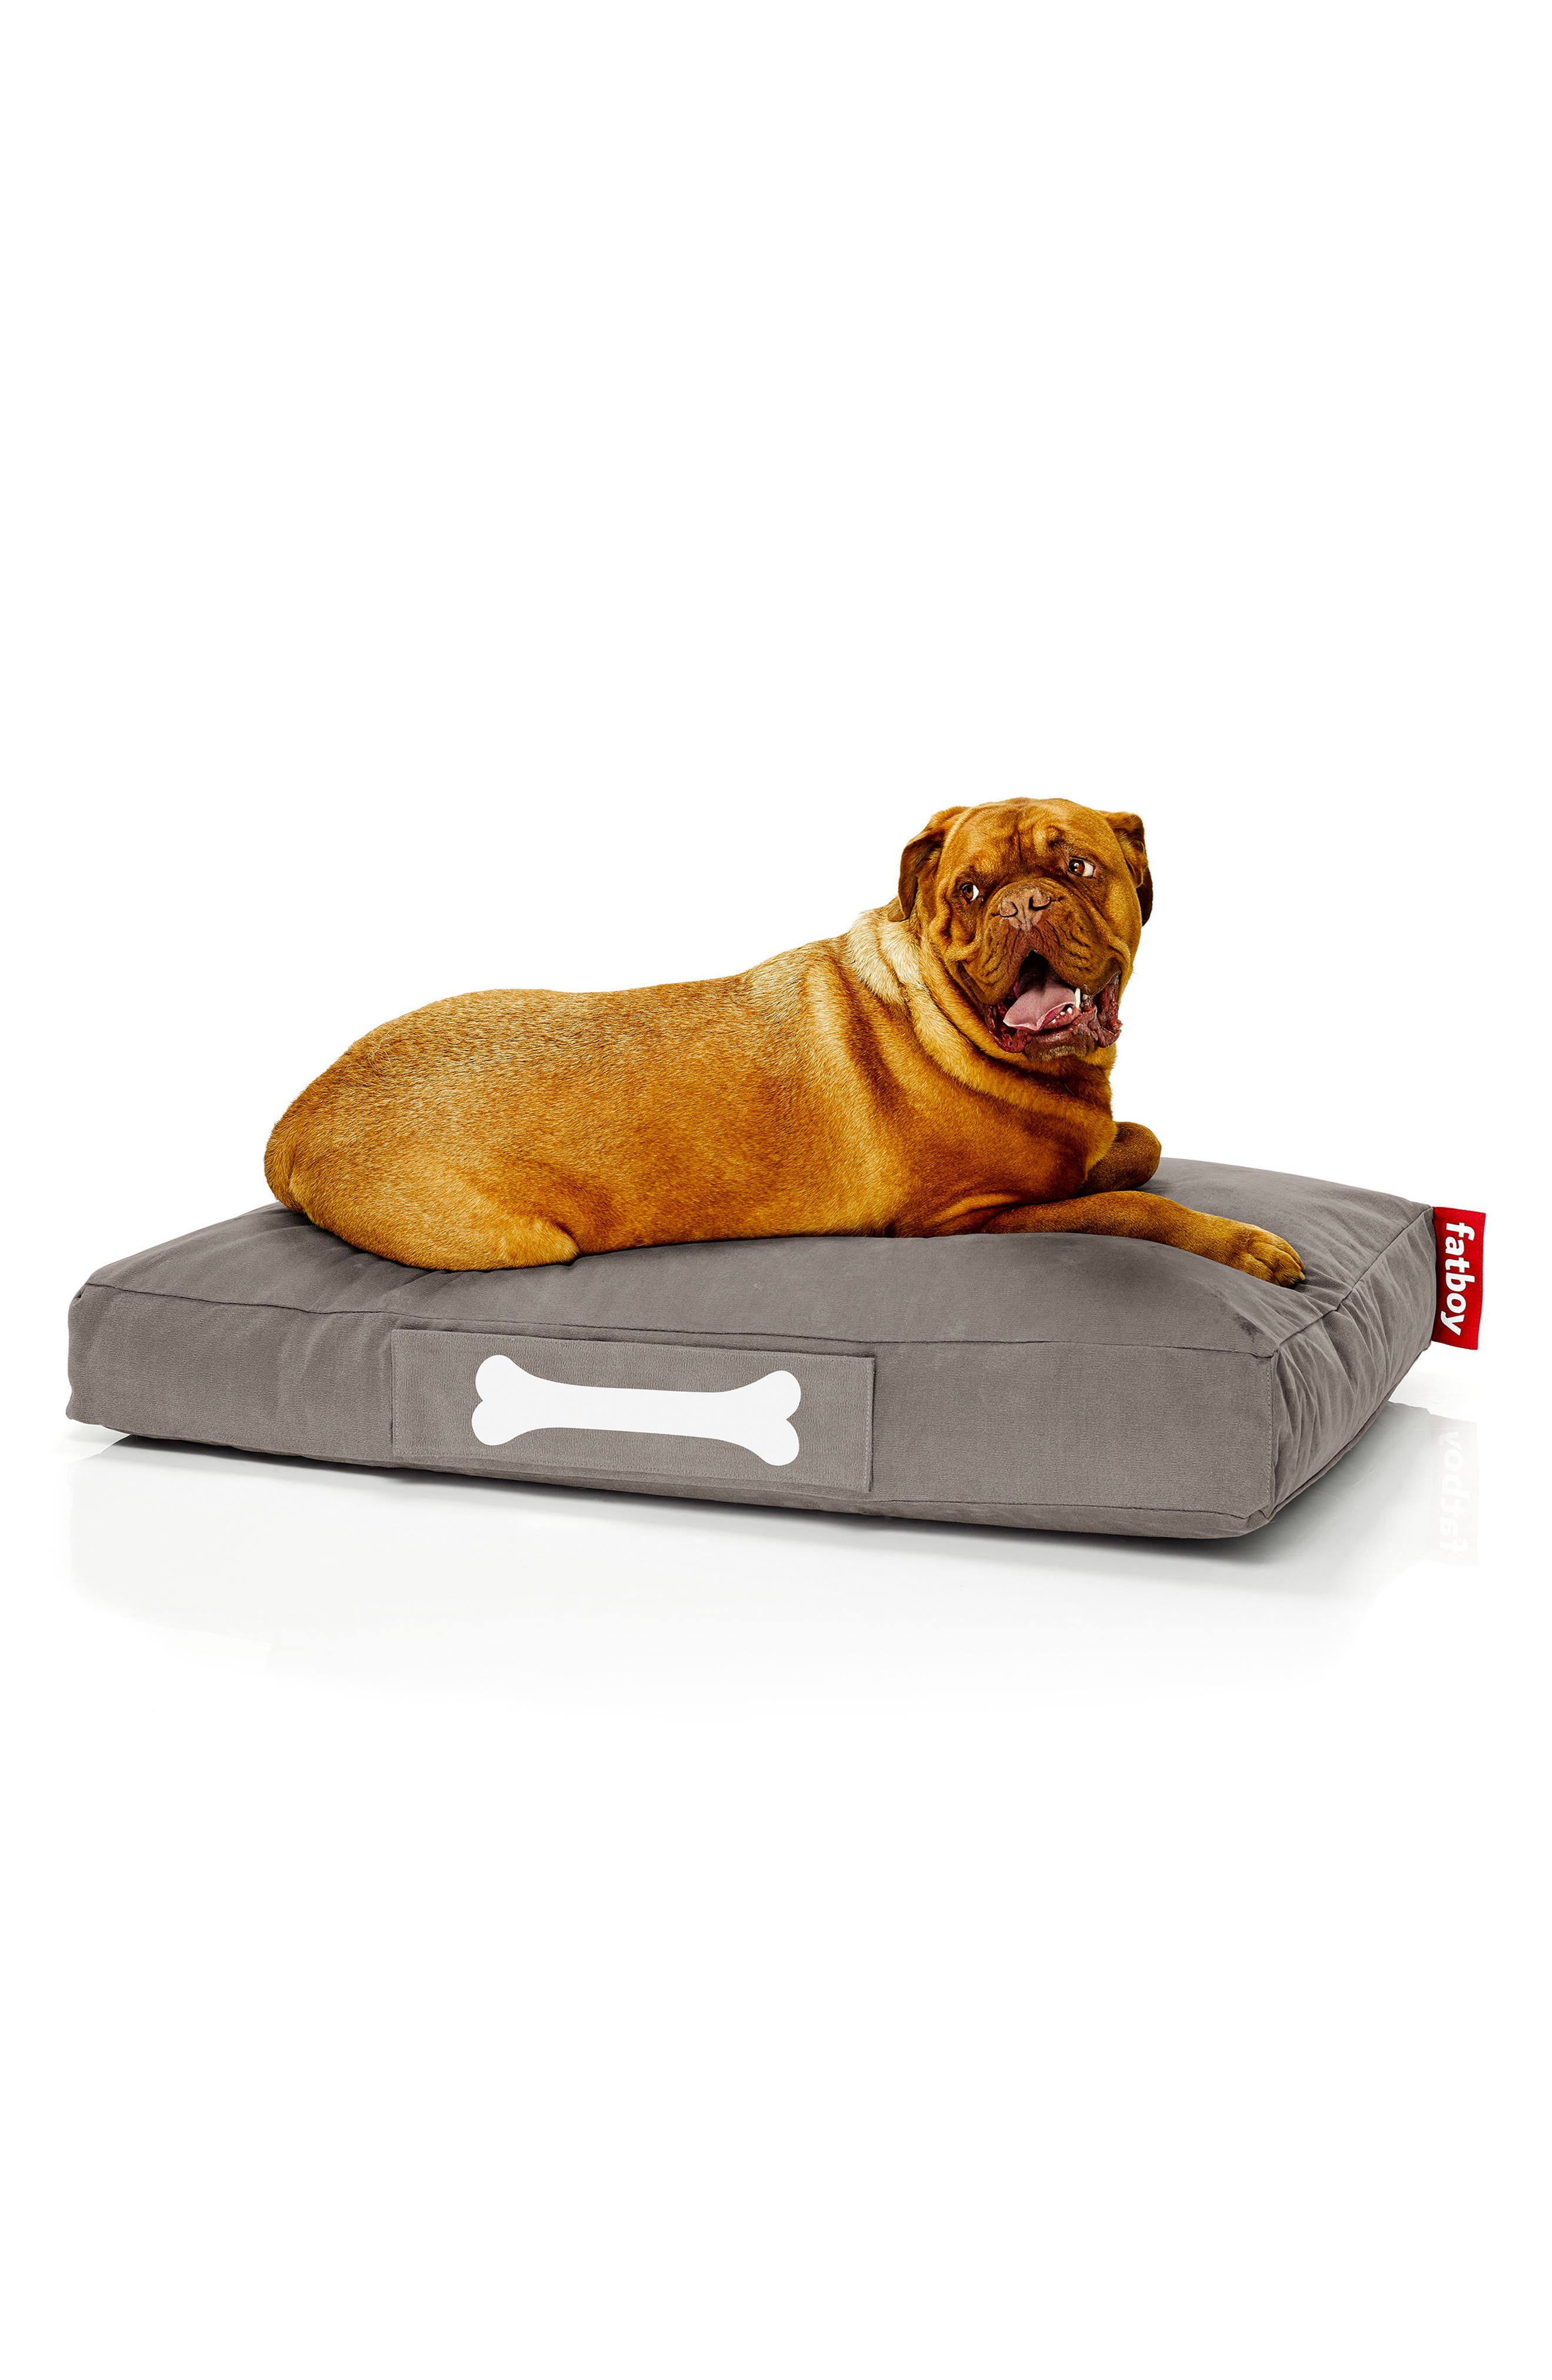 Doggielounge - Stonewashed Pet Bed,                             Alternate thumbnail 3, color,                             Taupe